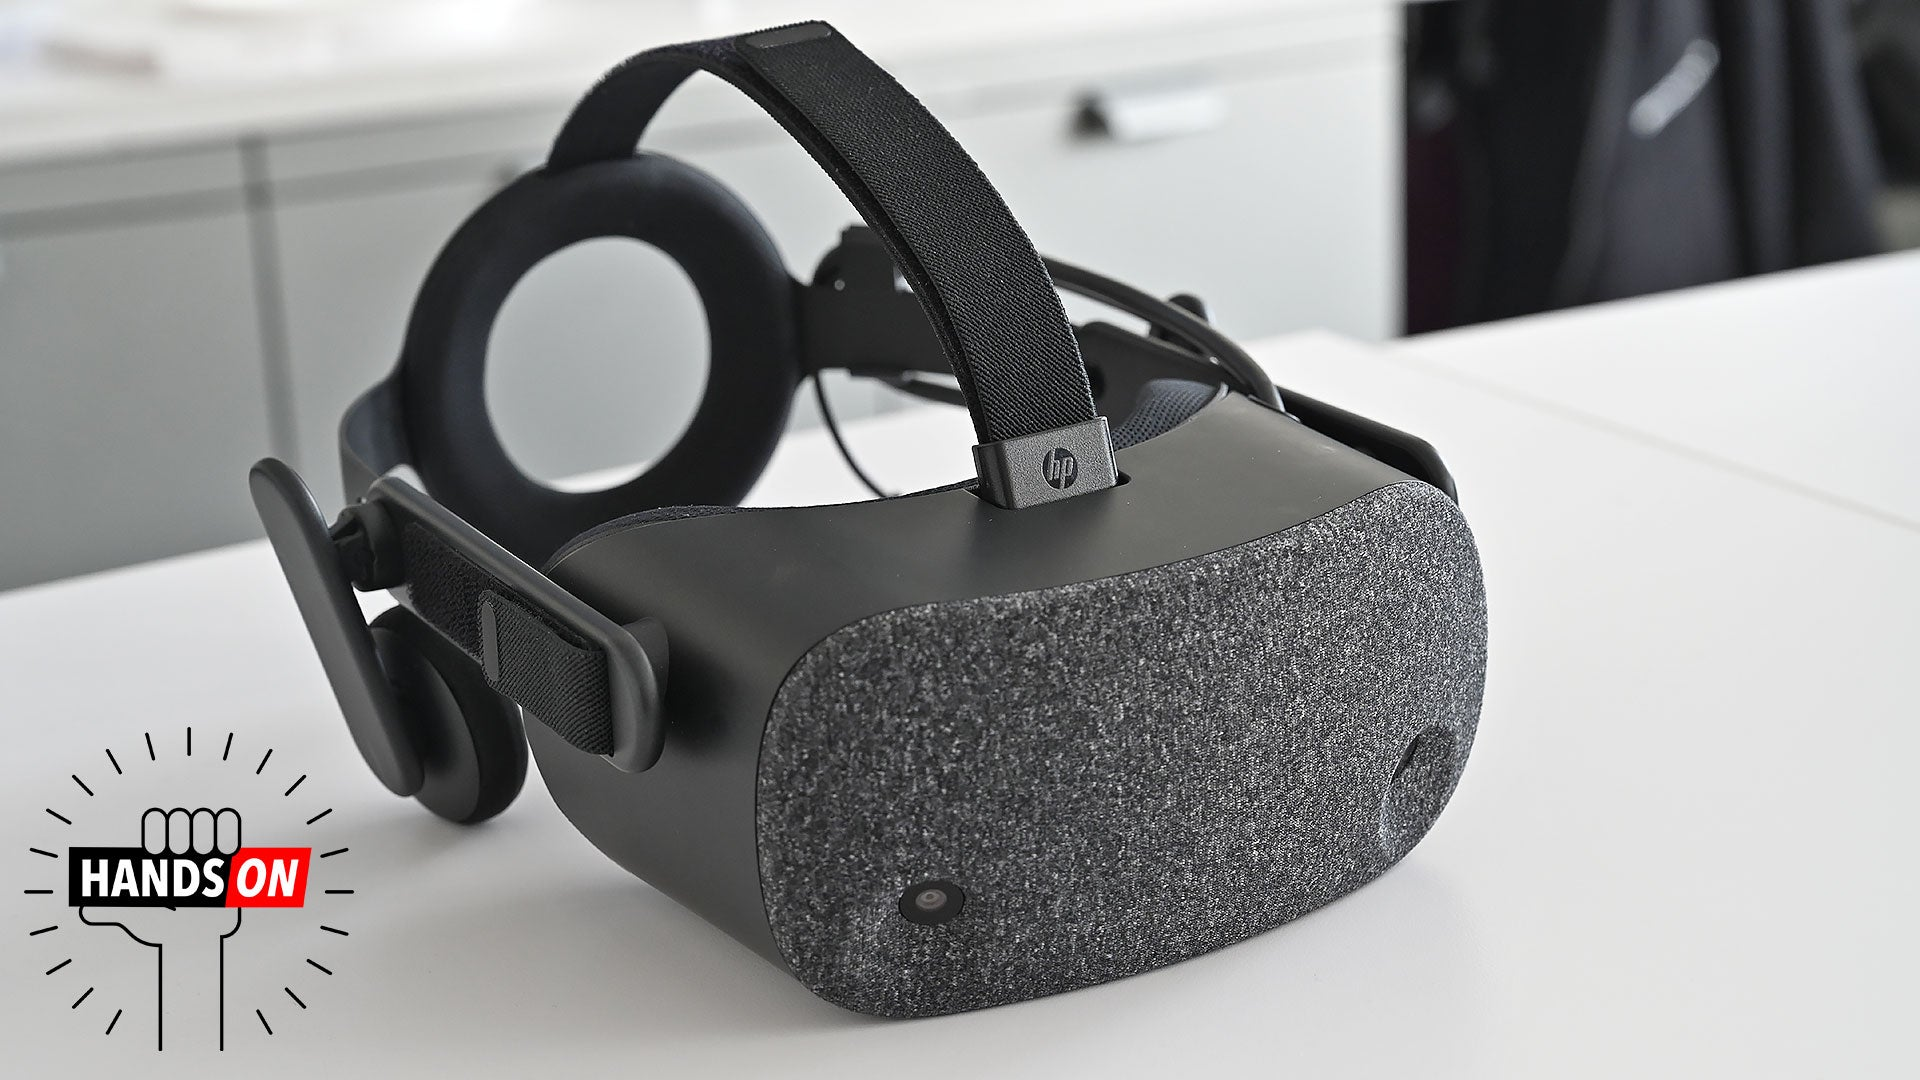 HP's Reverb Headset Brings Us Closer To Crystal Clear VR